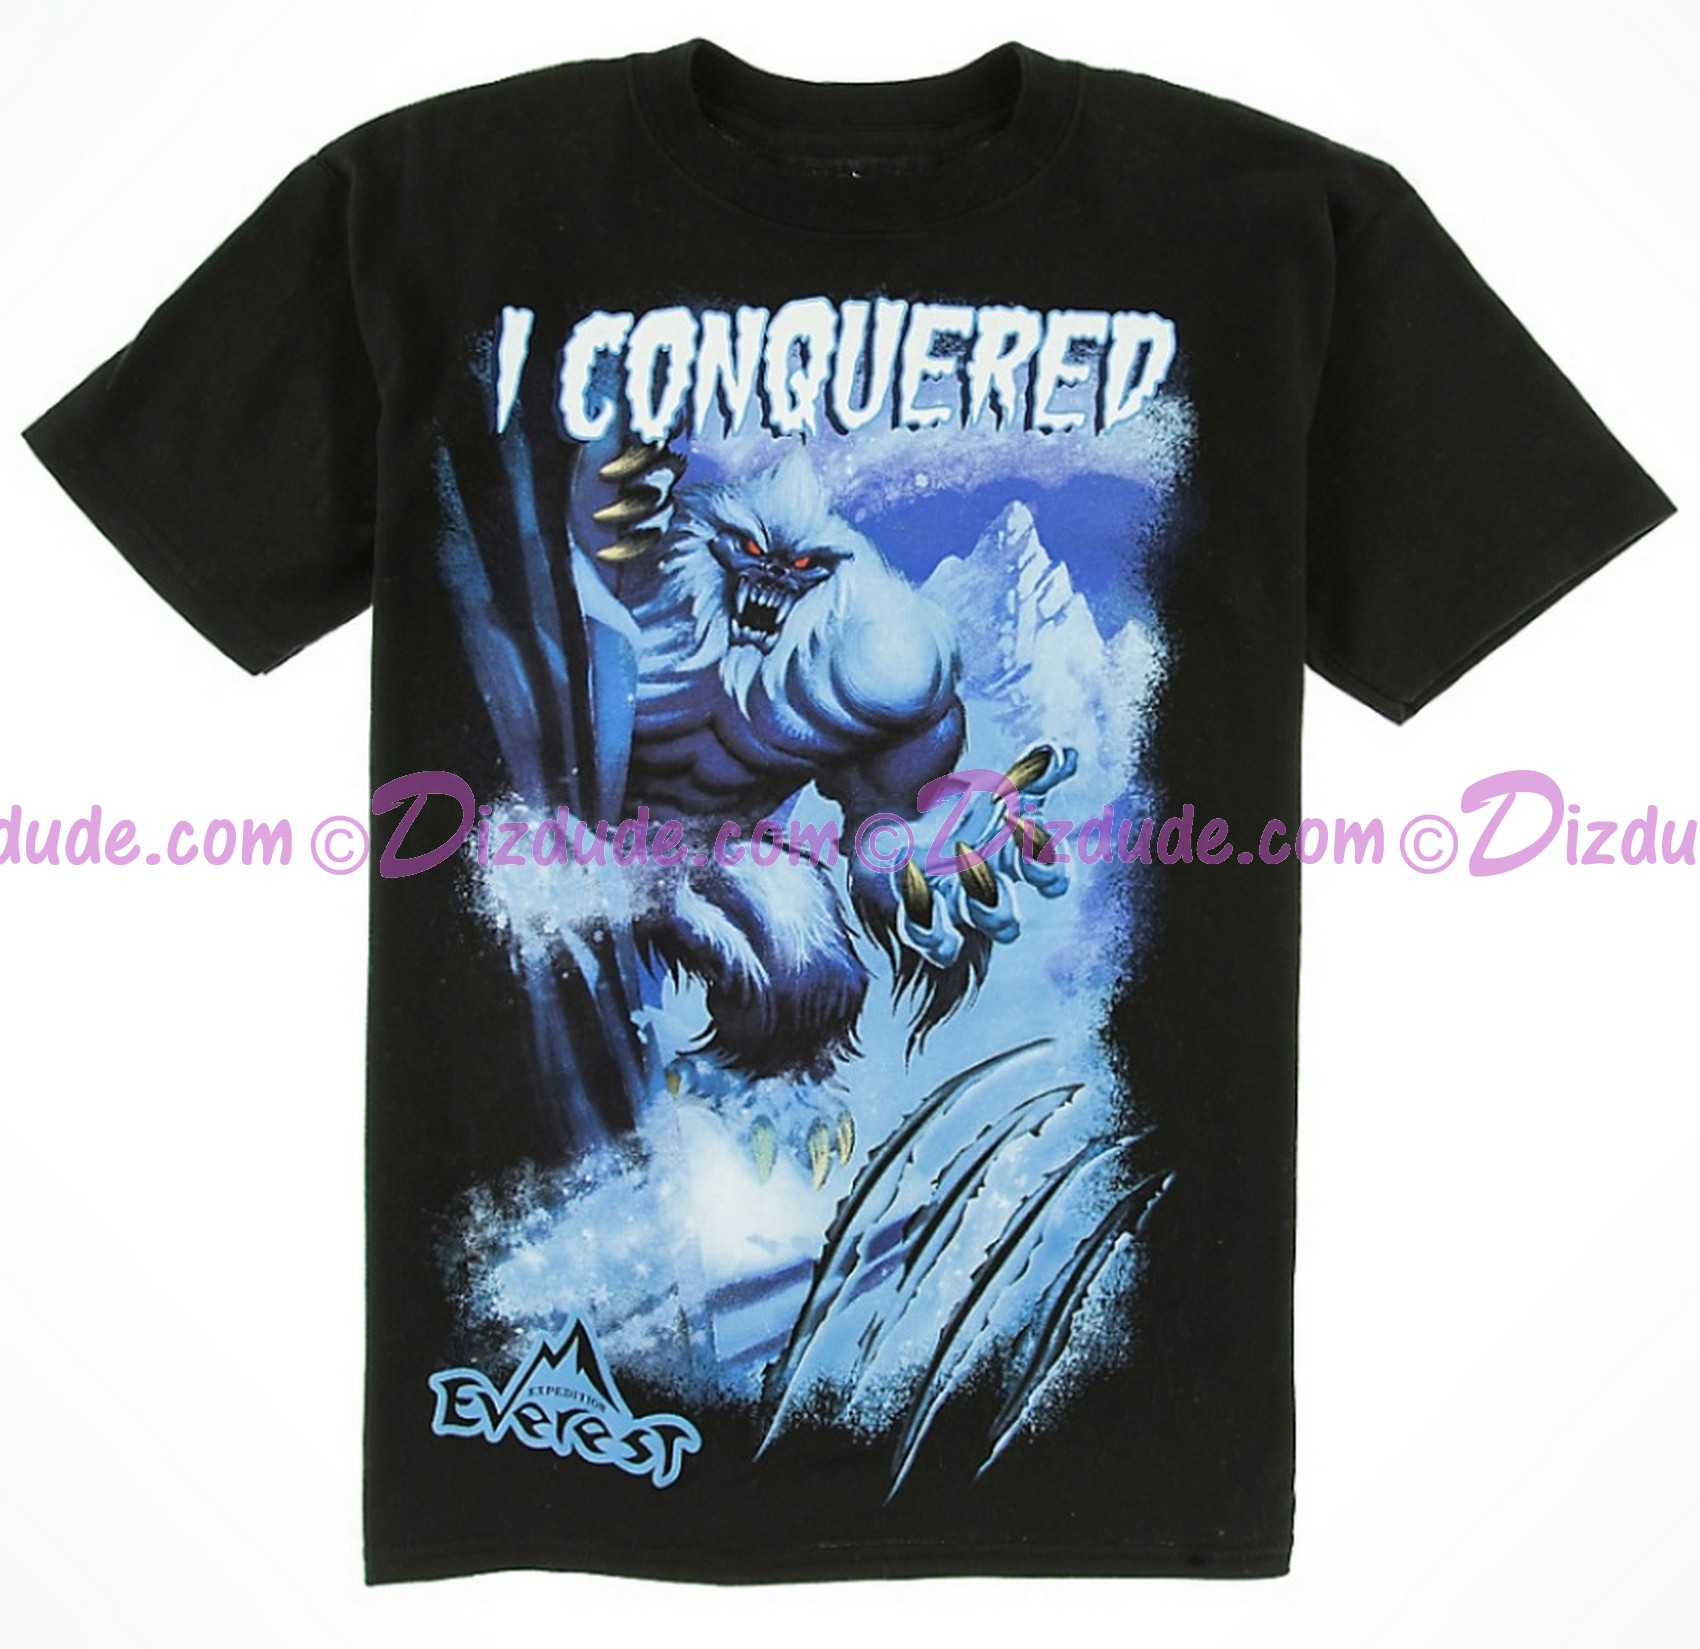 Vintage I Conquered Expedition Everest Youth T-Shirt (Tee, Tshirt or T shirt)